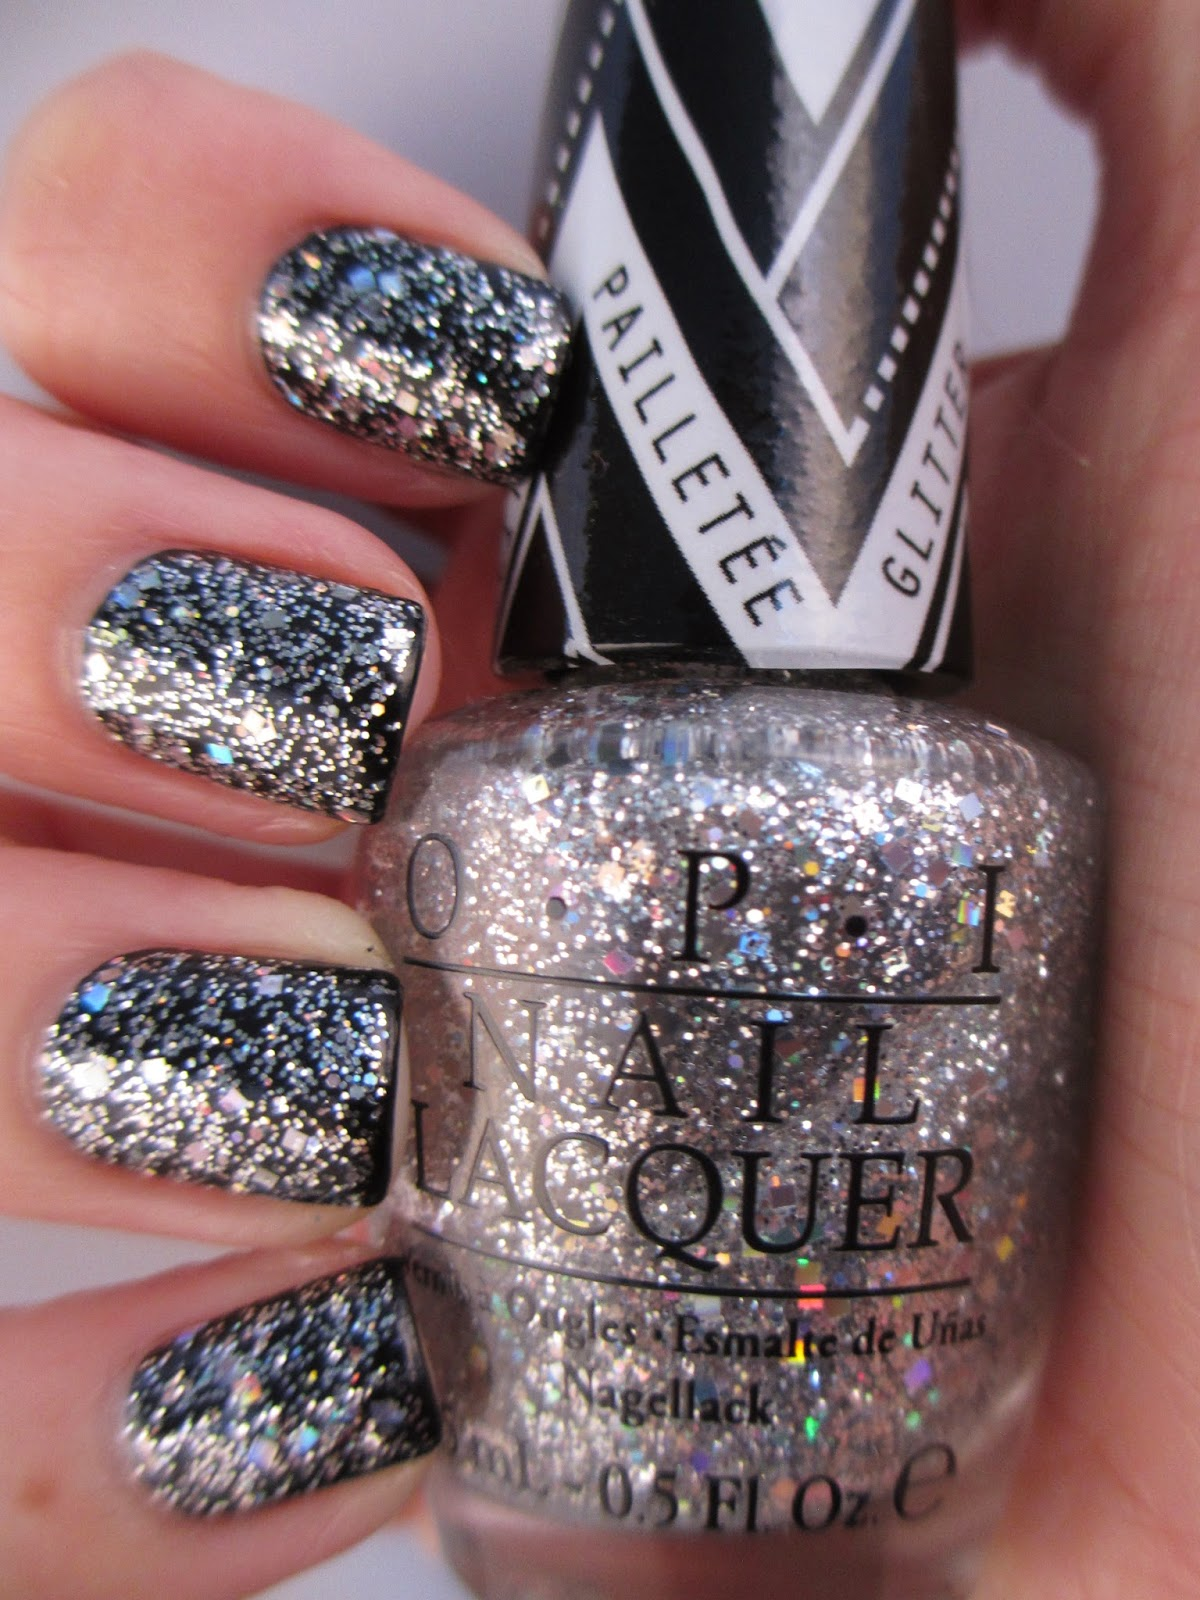 O.P.I-In-True-Stefani-Fashion-Holographic-glitter-pdf